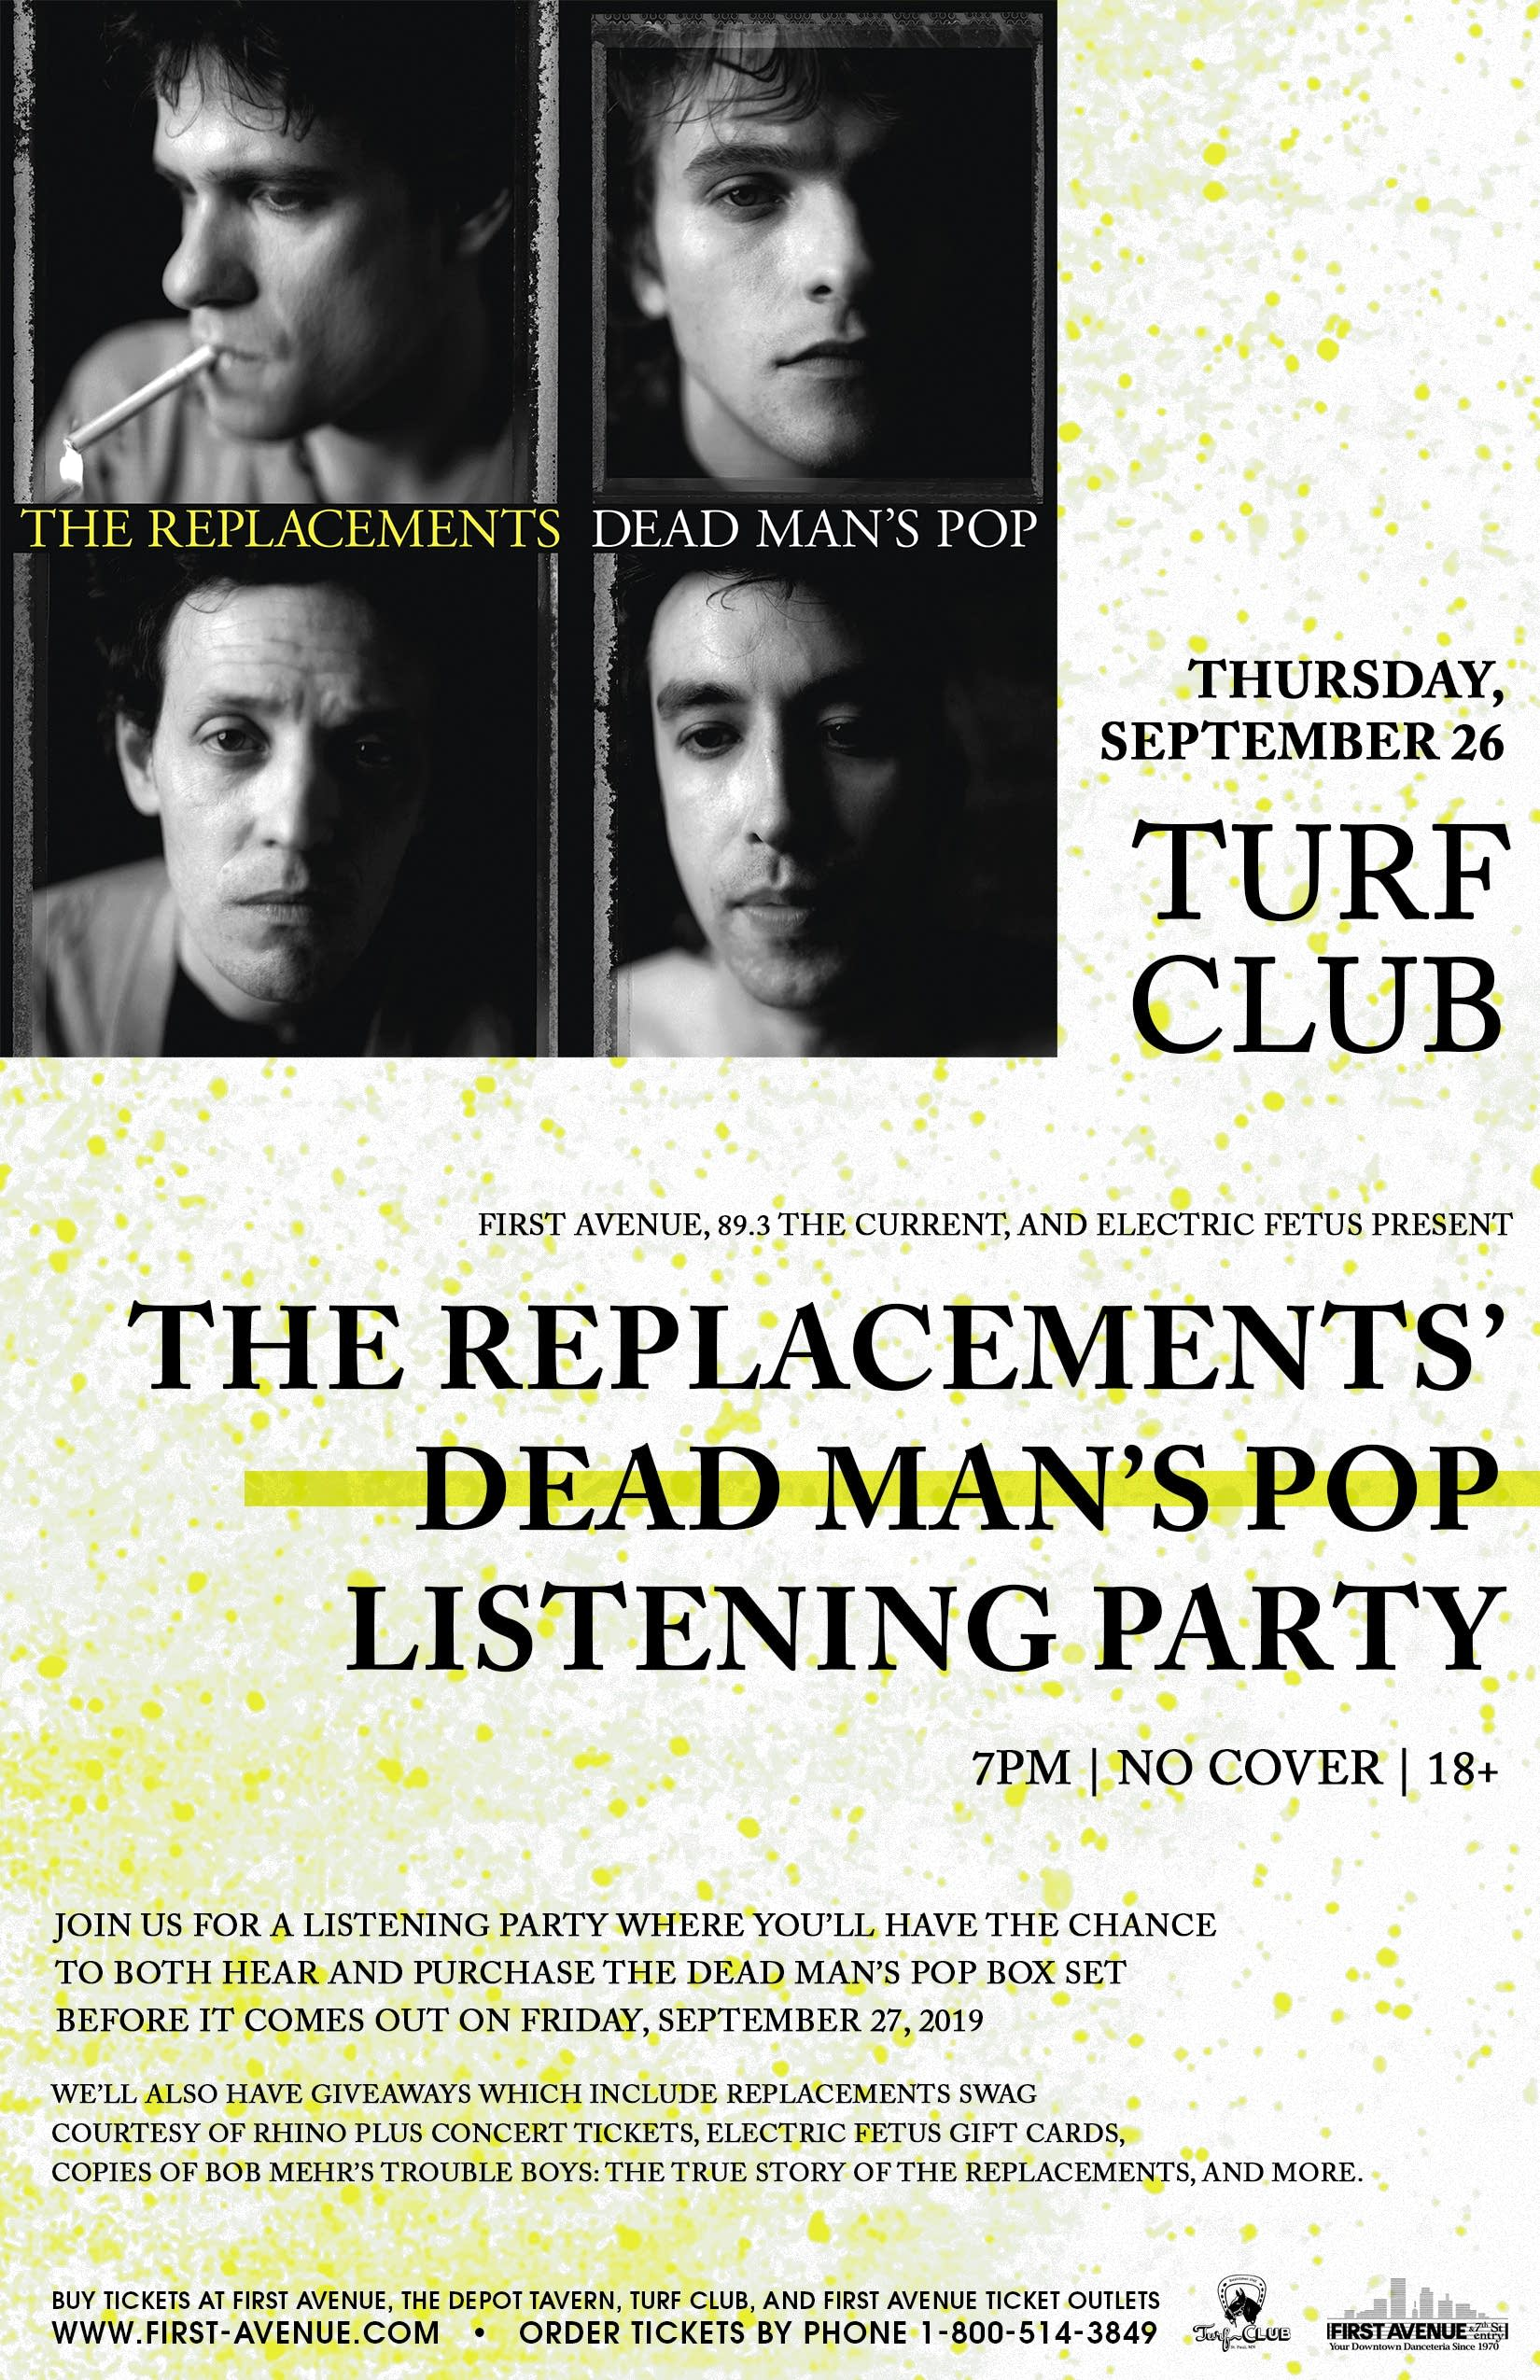 The Replacements' Dead Man's Pop Listening Party PosterV2